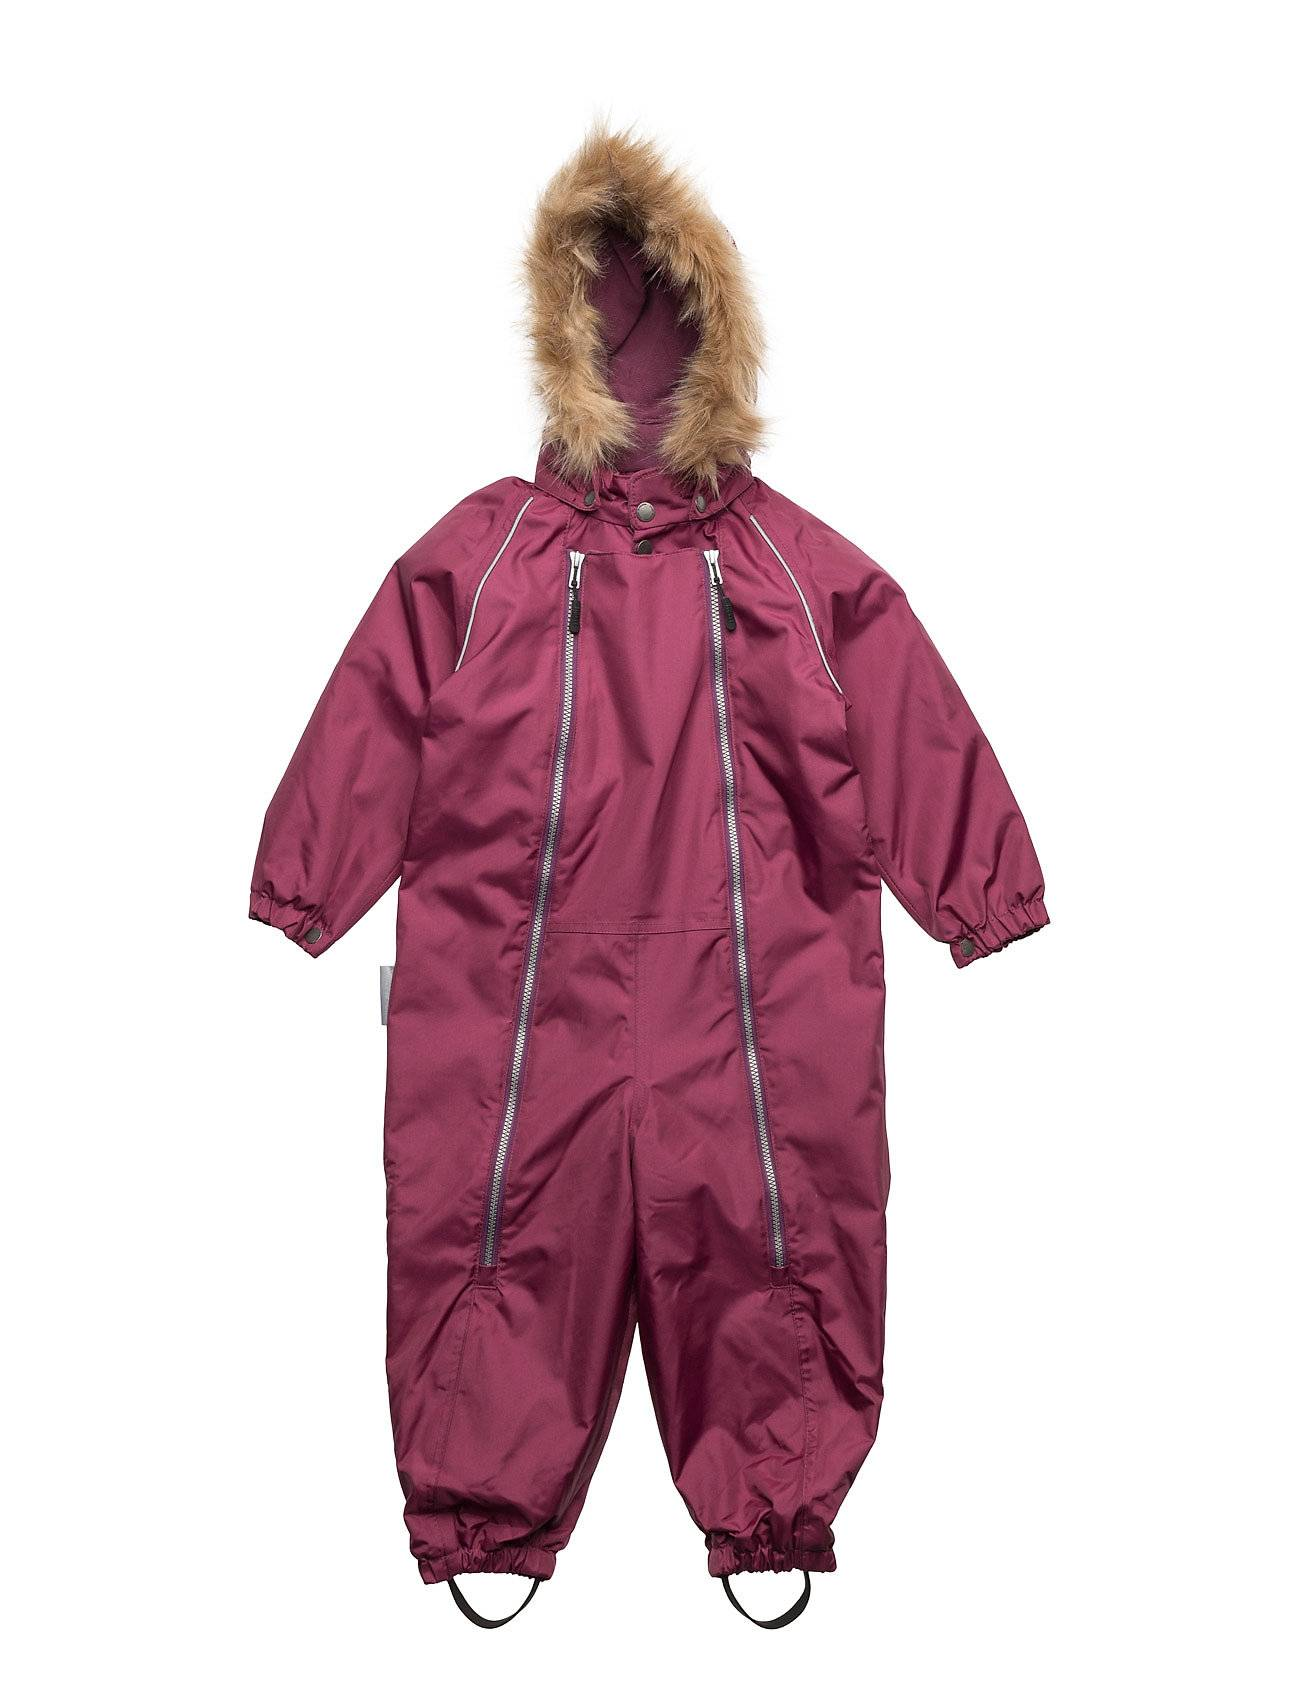 Ticket to Heaven Suit Snowbaggie With Detachable Hood